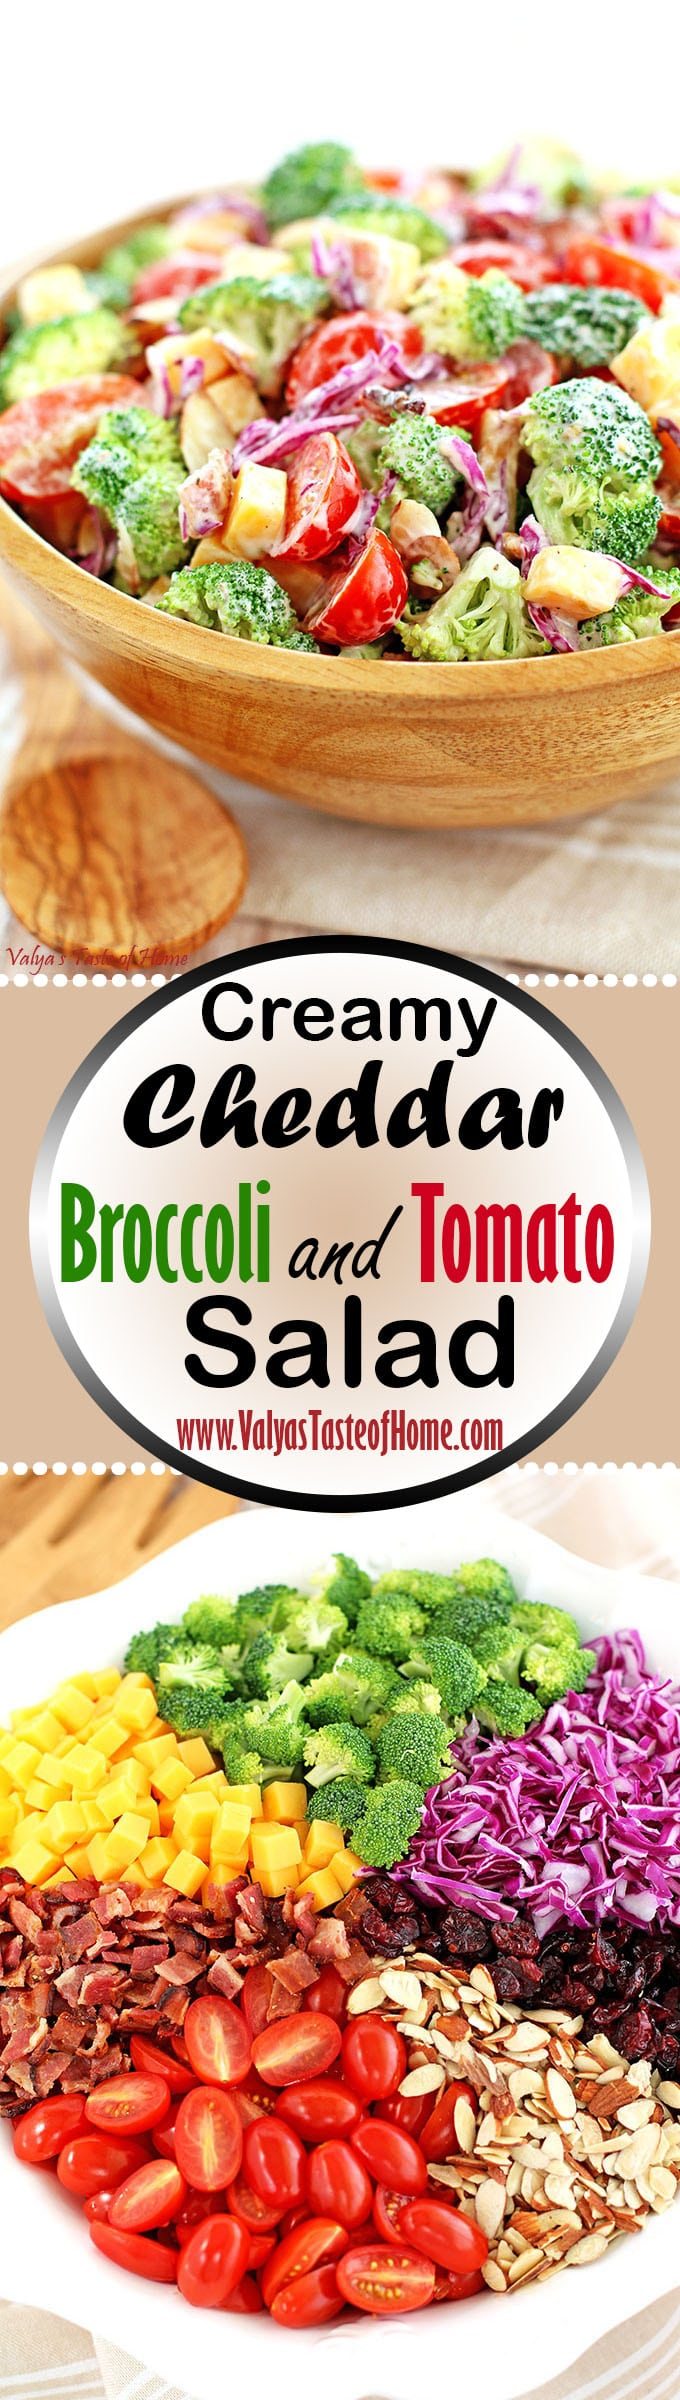 almond slivers, cheddar cheese, cranberries, Creamy Cheddar Broccoli and Tomato Salad Recipe, Greek yogurt, Greek yogurt ranch dressing, healthy, Homemade Ranch Dressing, natural bacon, red cabbage, vegetarian, winter vegetable salad